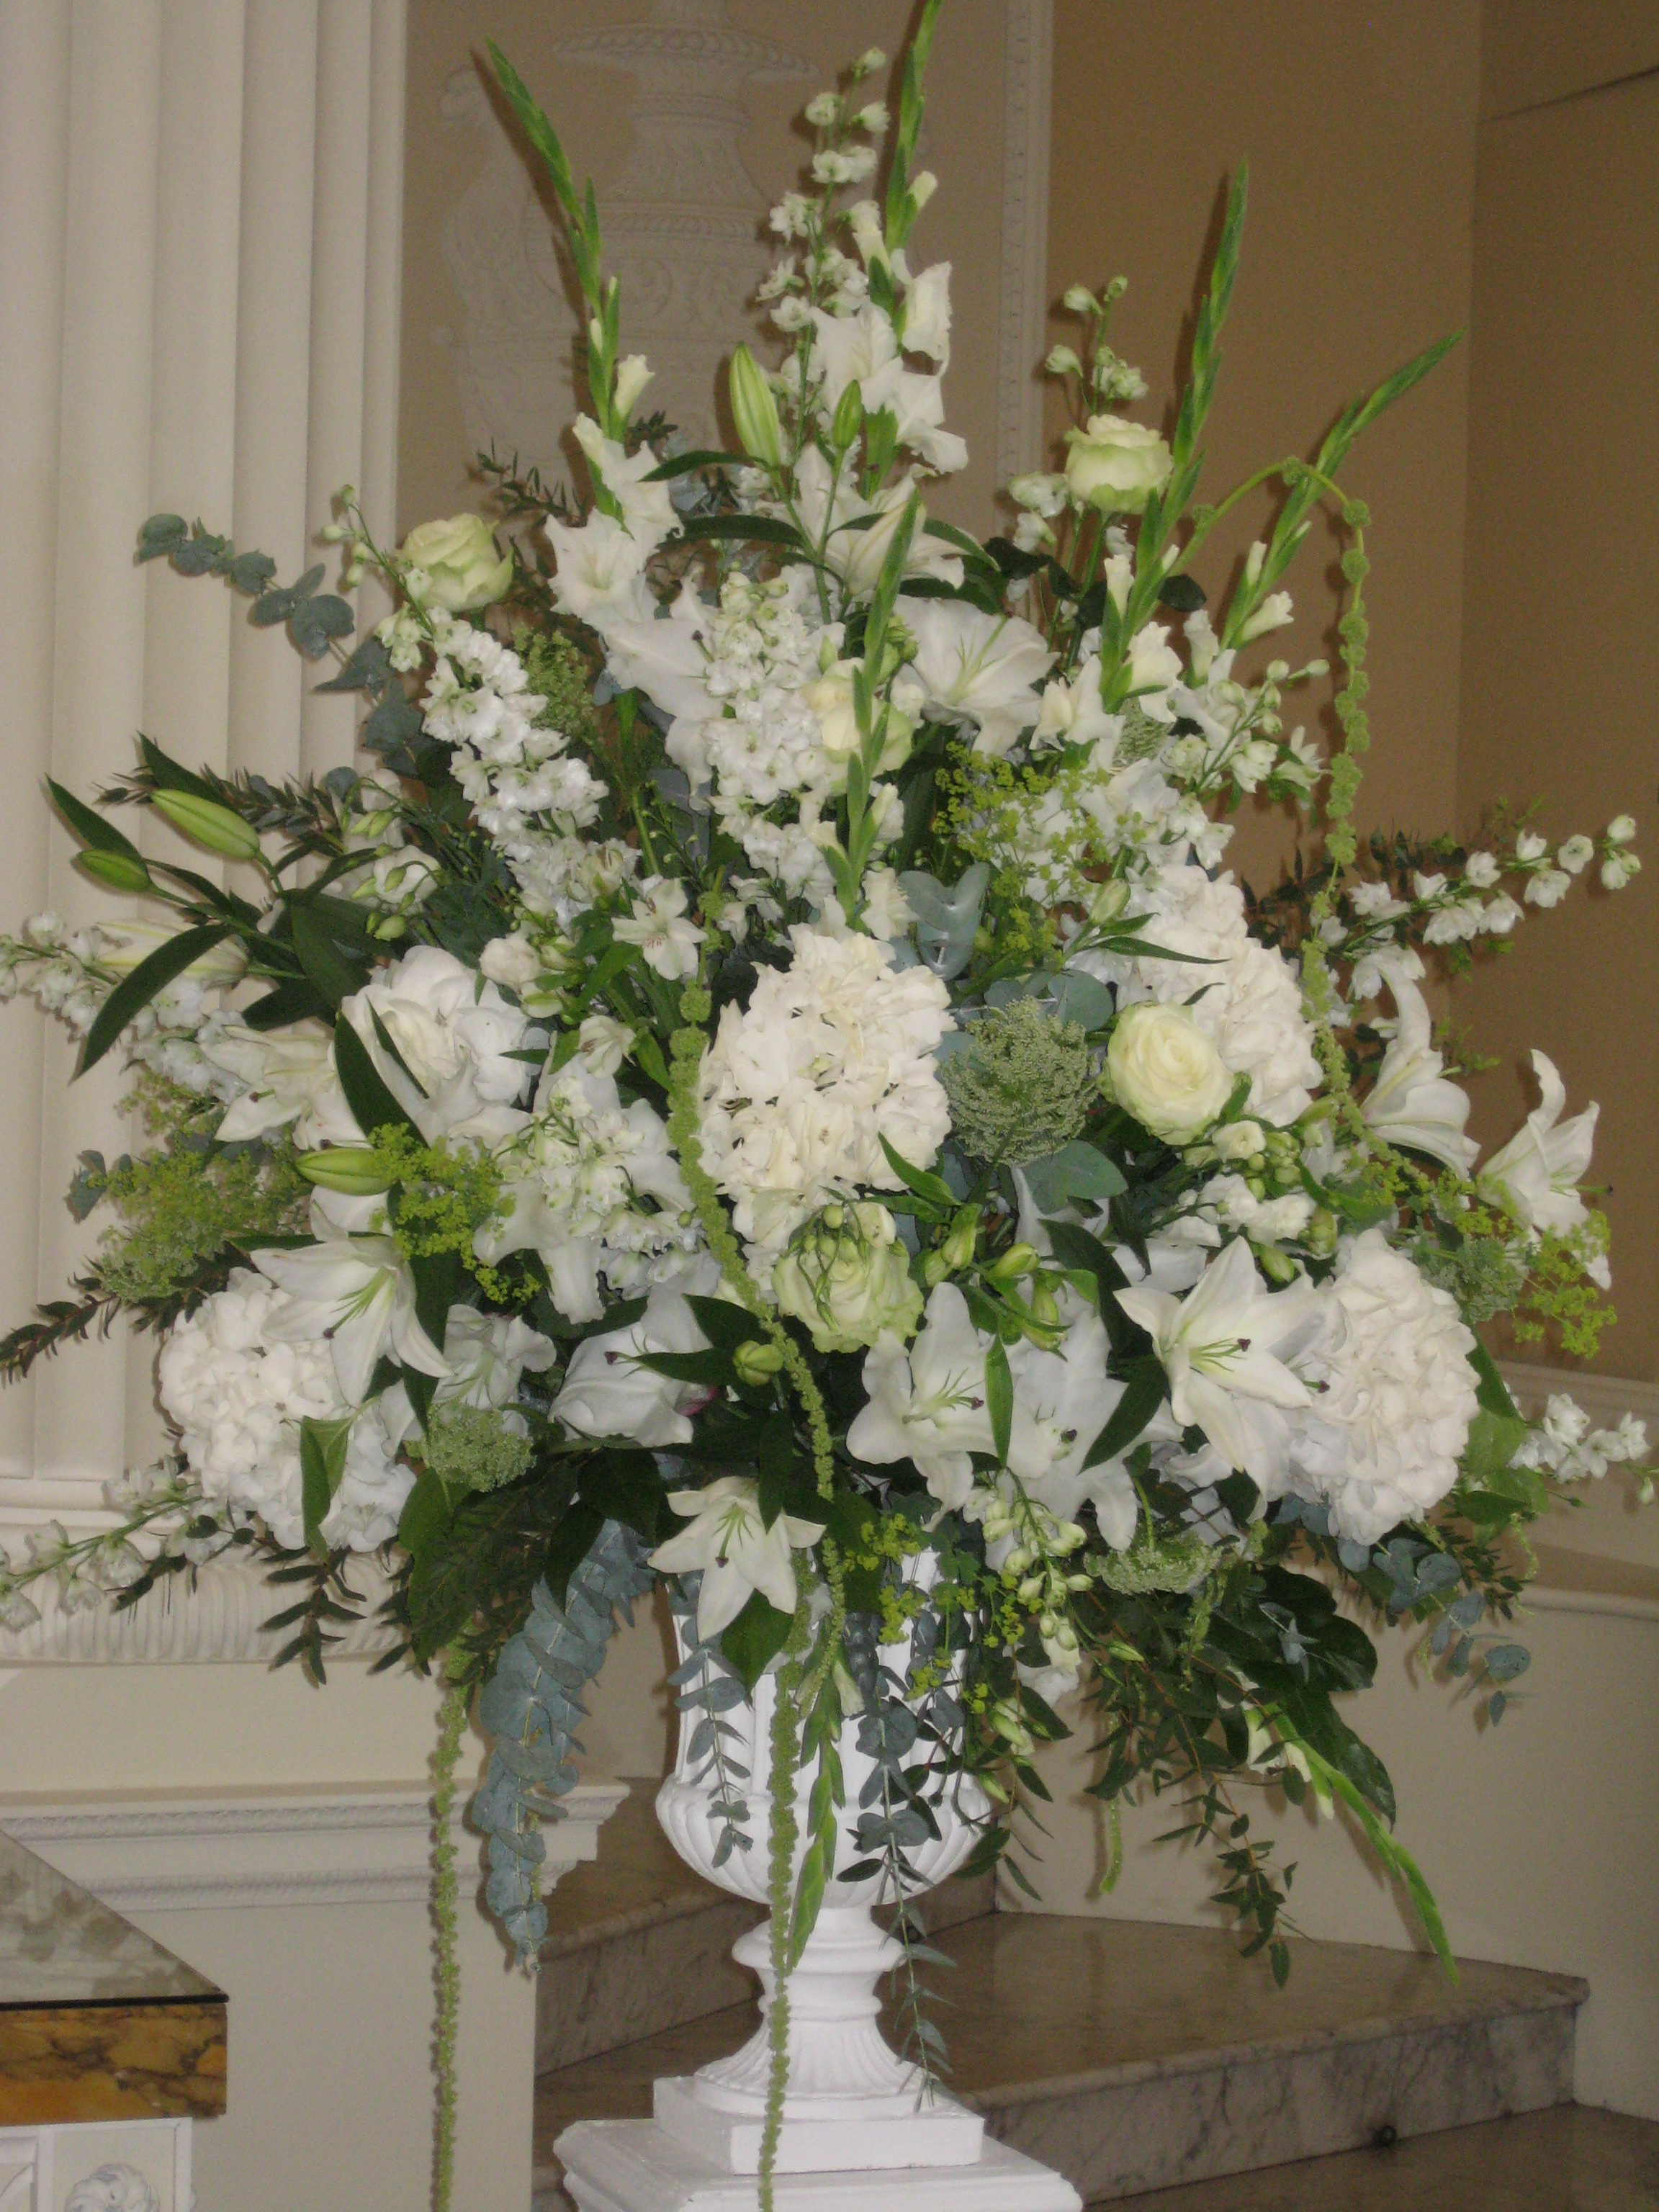 Wedding Flowers For Venue : Wedding reception venue flowers ? by louise